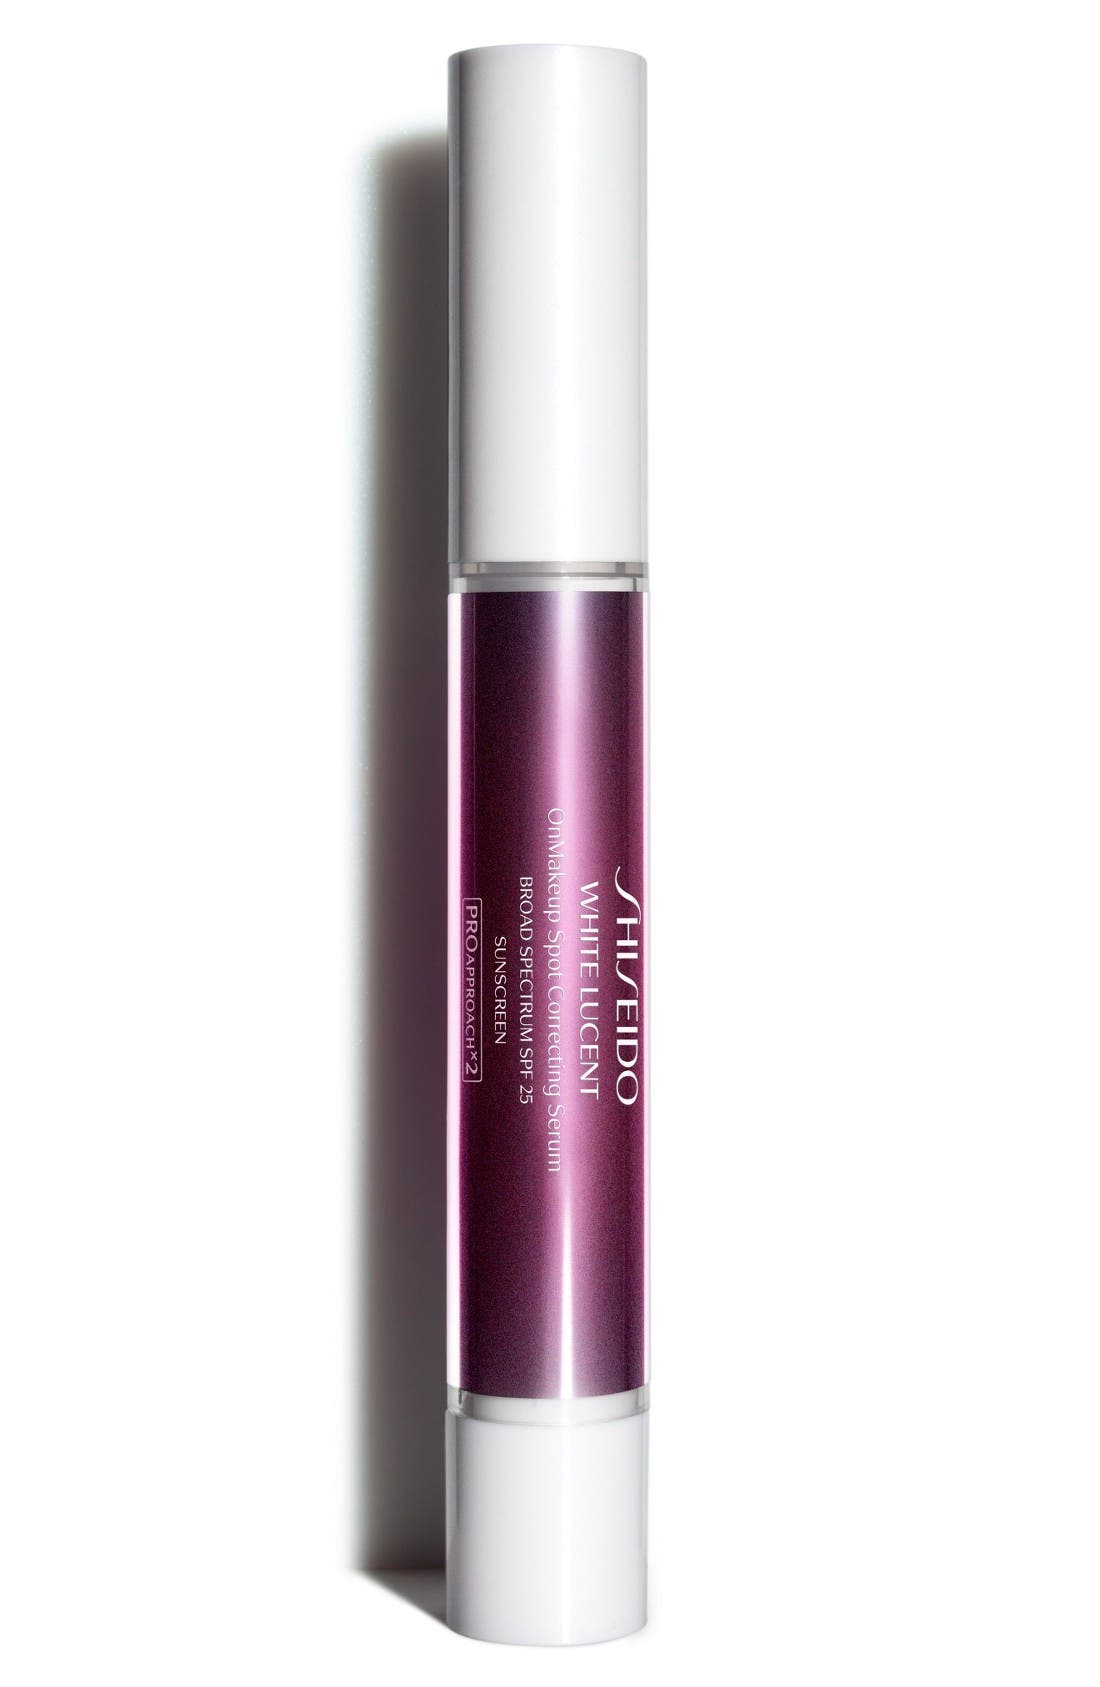 White Lucent OnMakeup Spot Correcting Serum Broad Spectrum SPF 25,                         Main,                         color, Medium